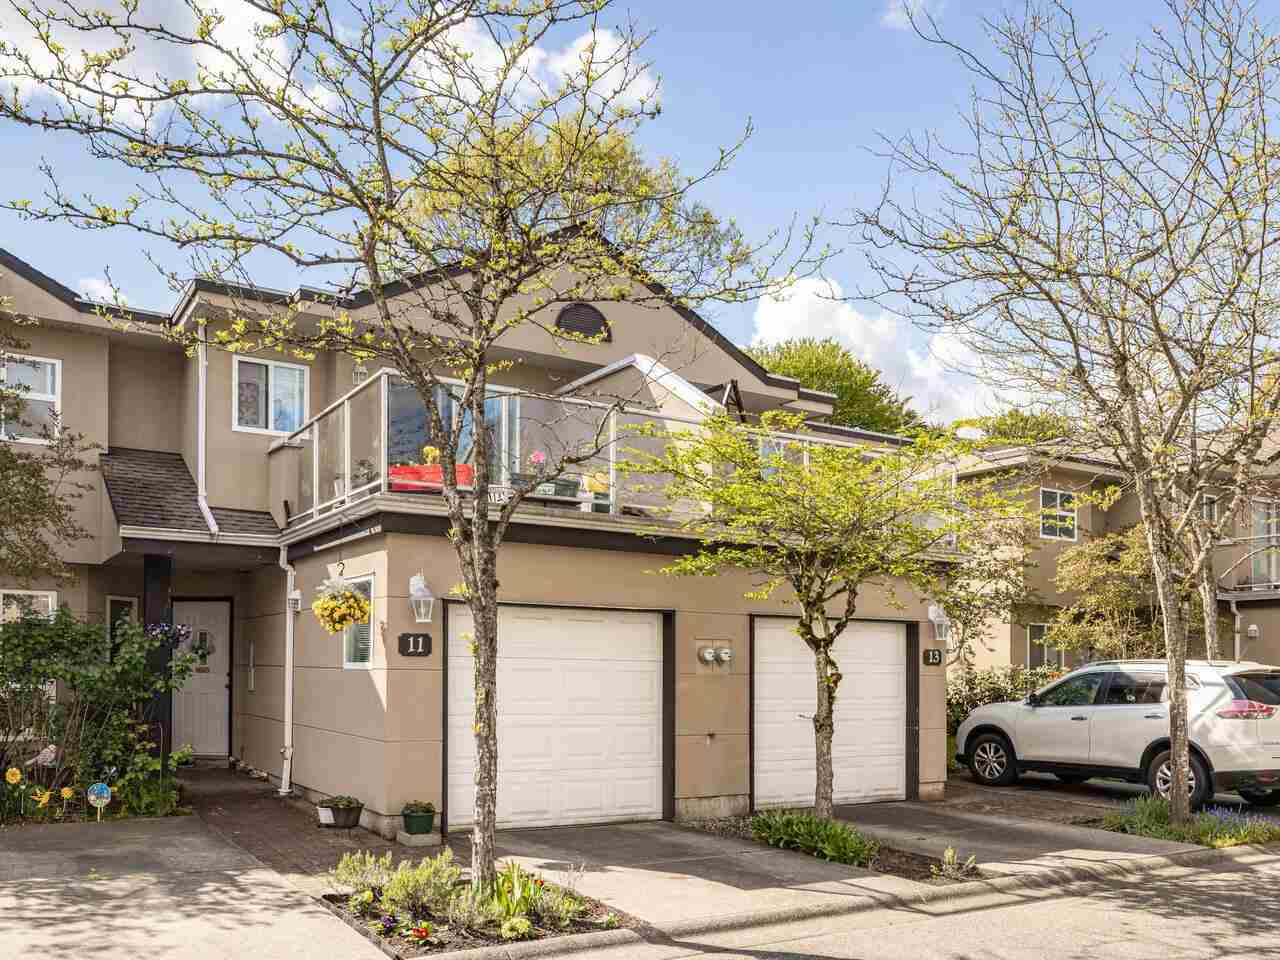 11 15875 84 AVE AVENUE - Fleetwood Tynehead Townhouse for sale, 3 Bedrooms (R2574652) - #1